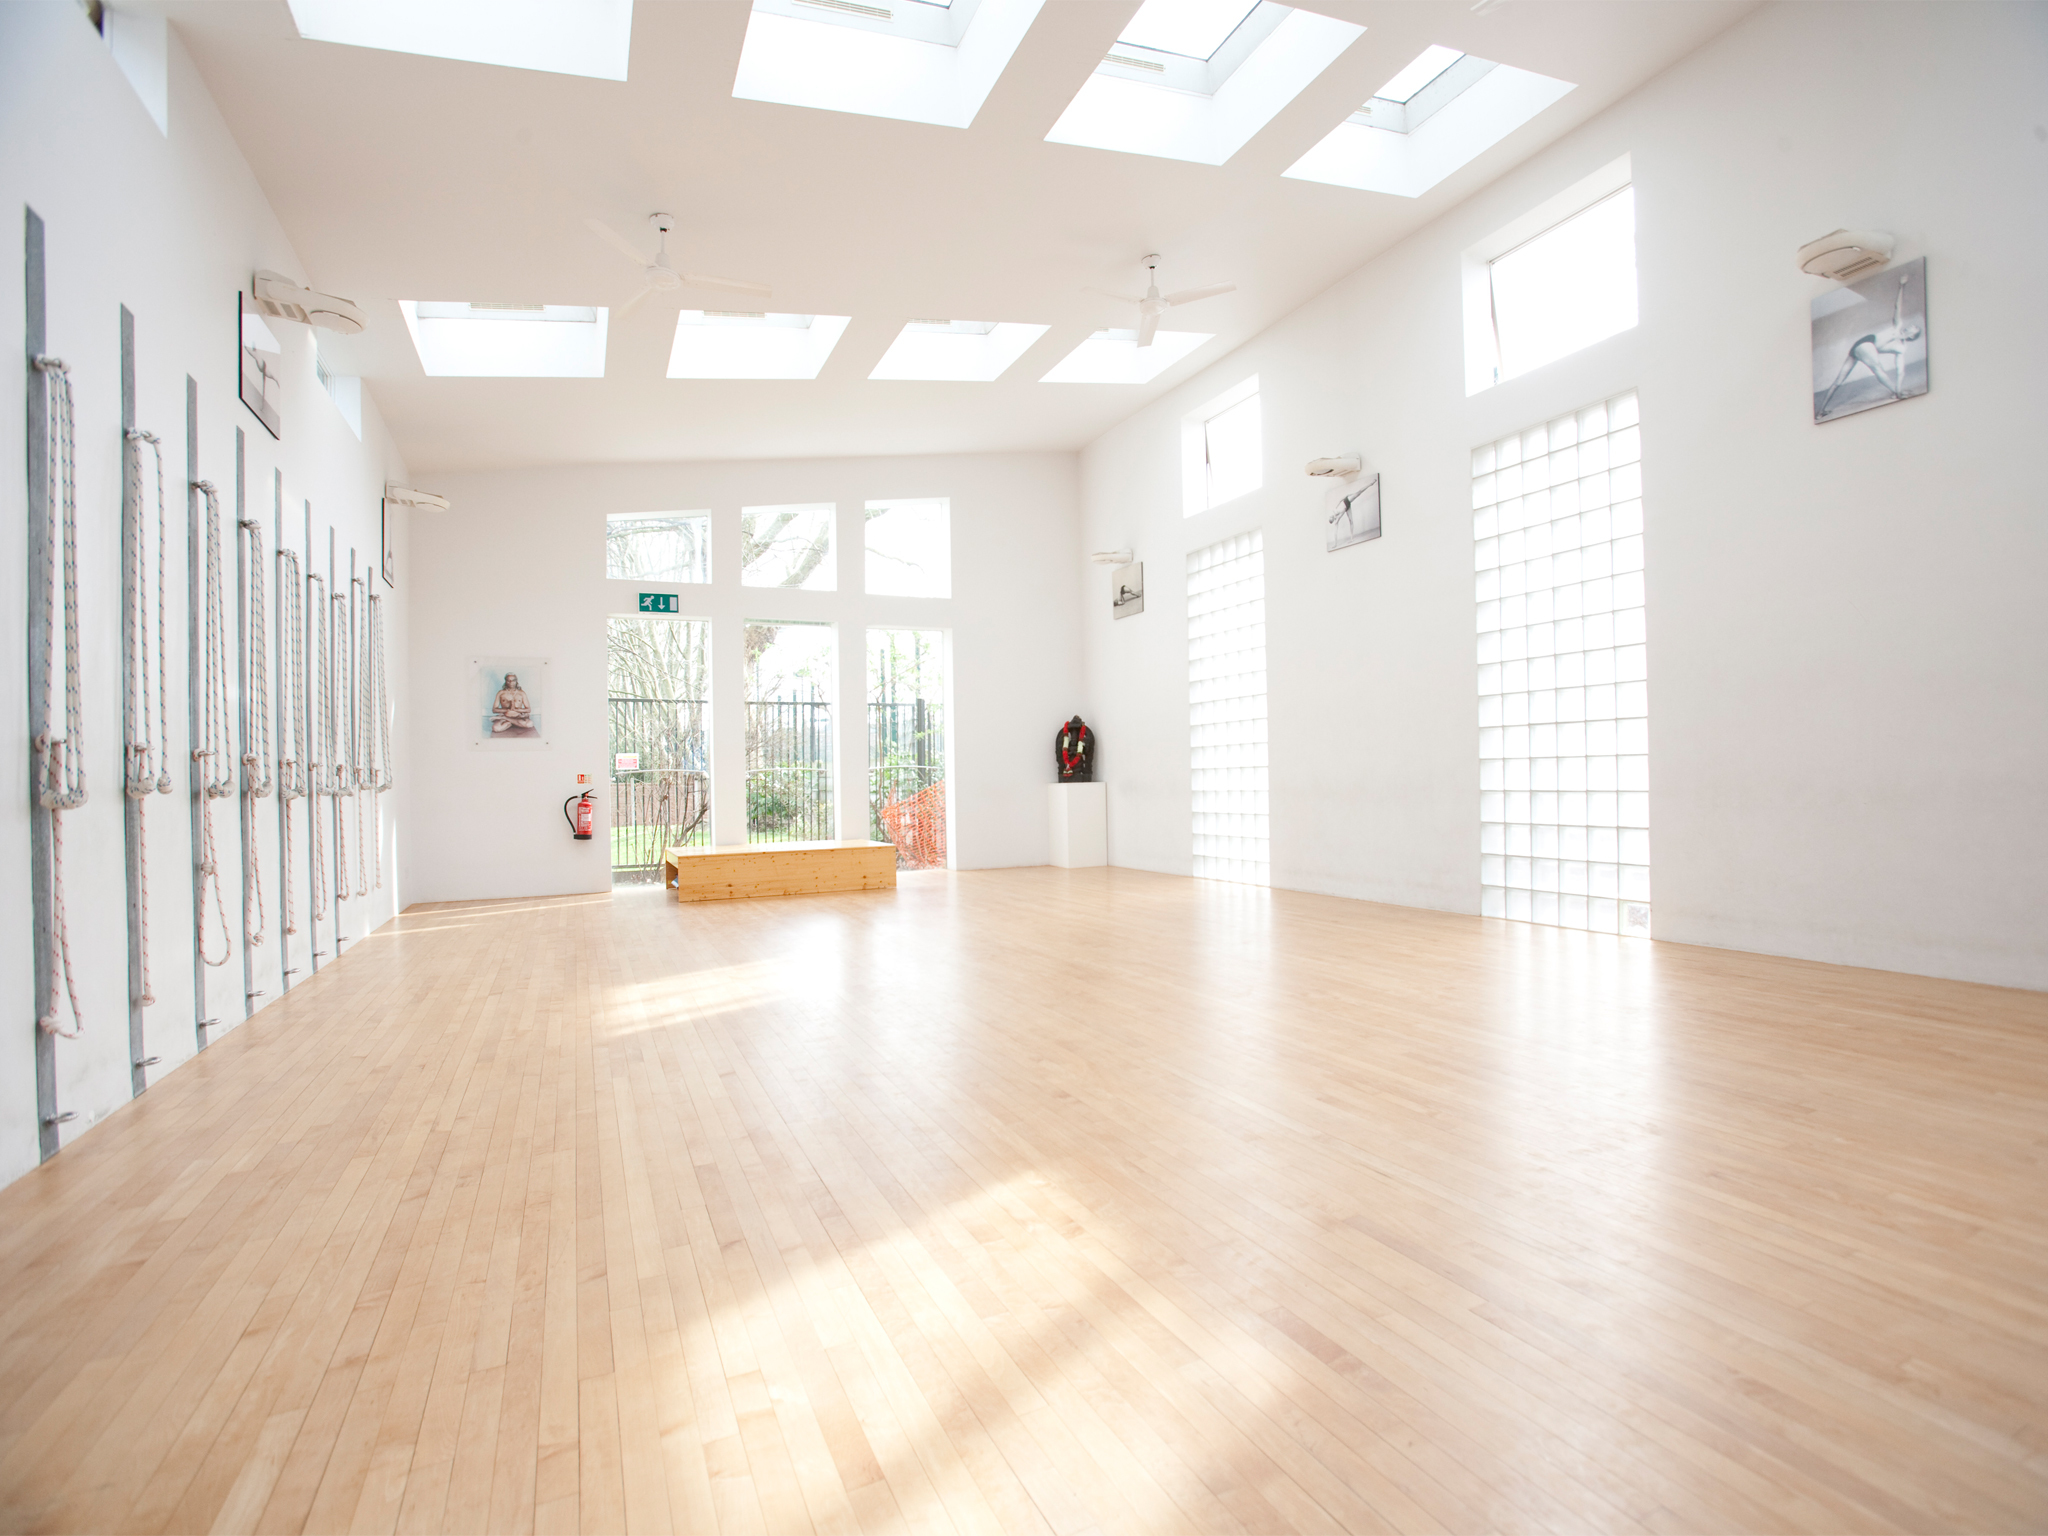 Best Yoga Classes in London | 22 Yoga Studios For Chilling Out